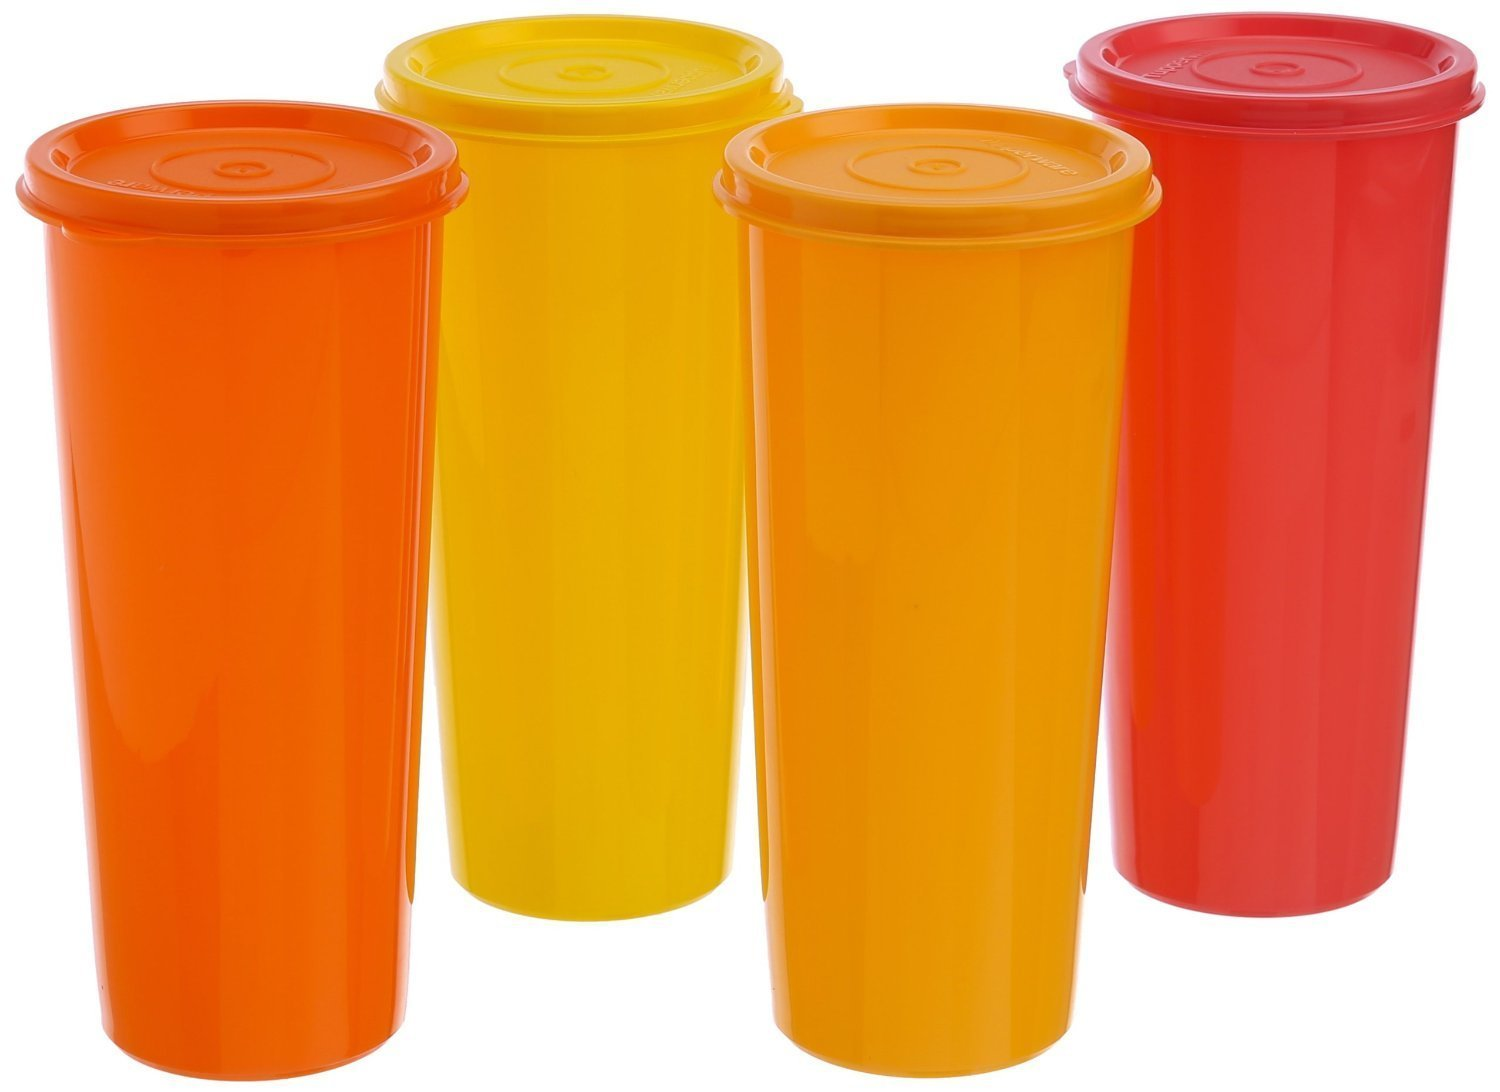 Tp 640 t212 tupperware jumbo tumblers set of 4 home for Botellas tupperware amazon